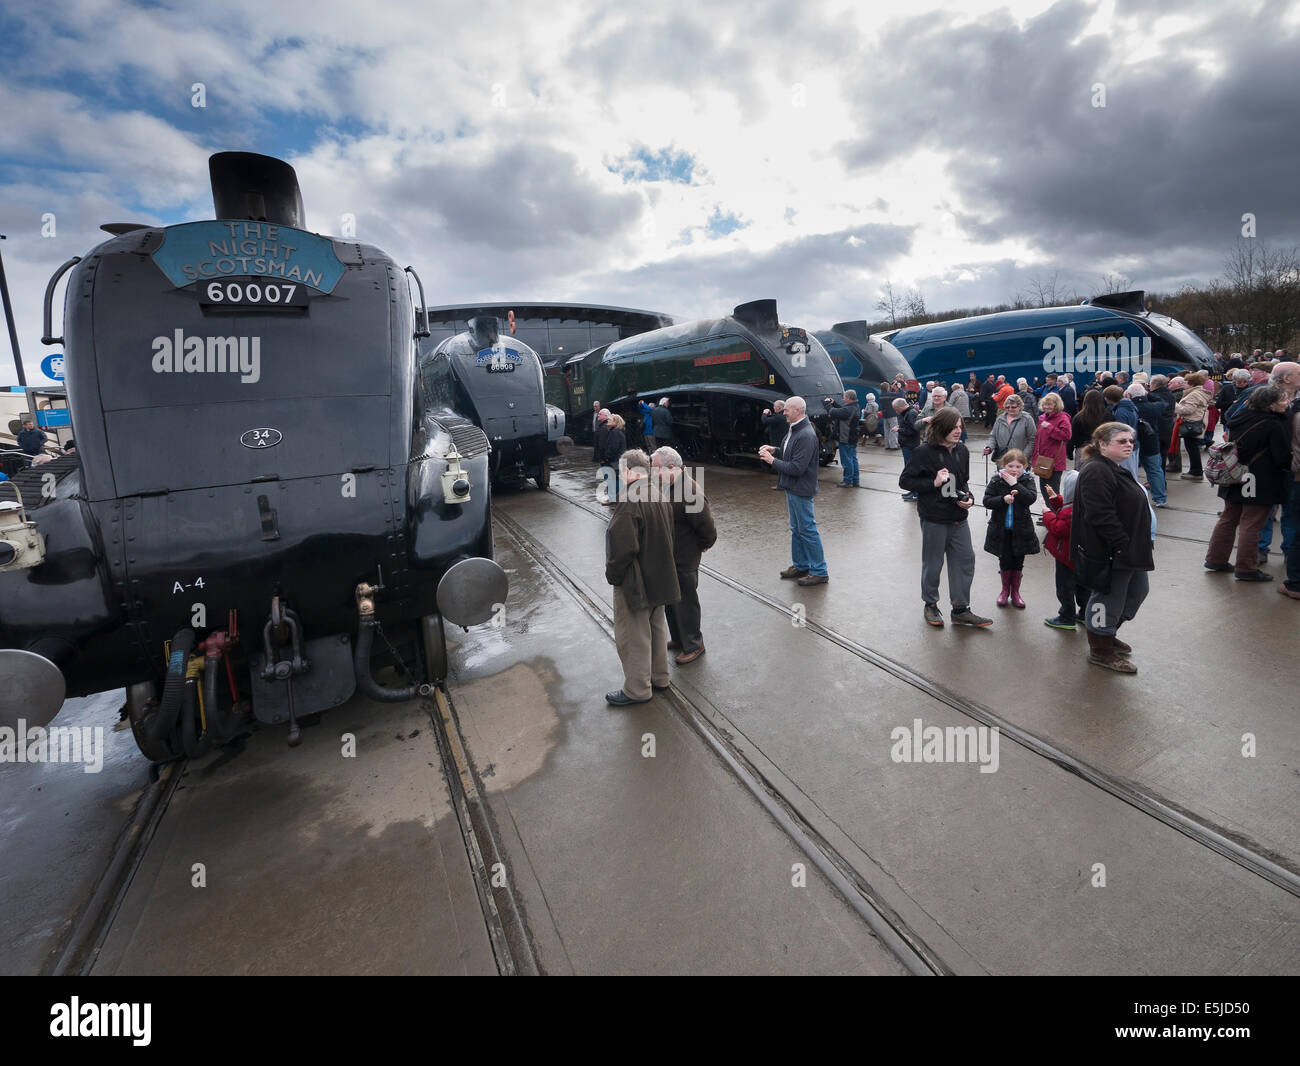 Class A4 sister engines gather for Great Goodbye at Shildon, County Durham - Stock Image